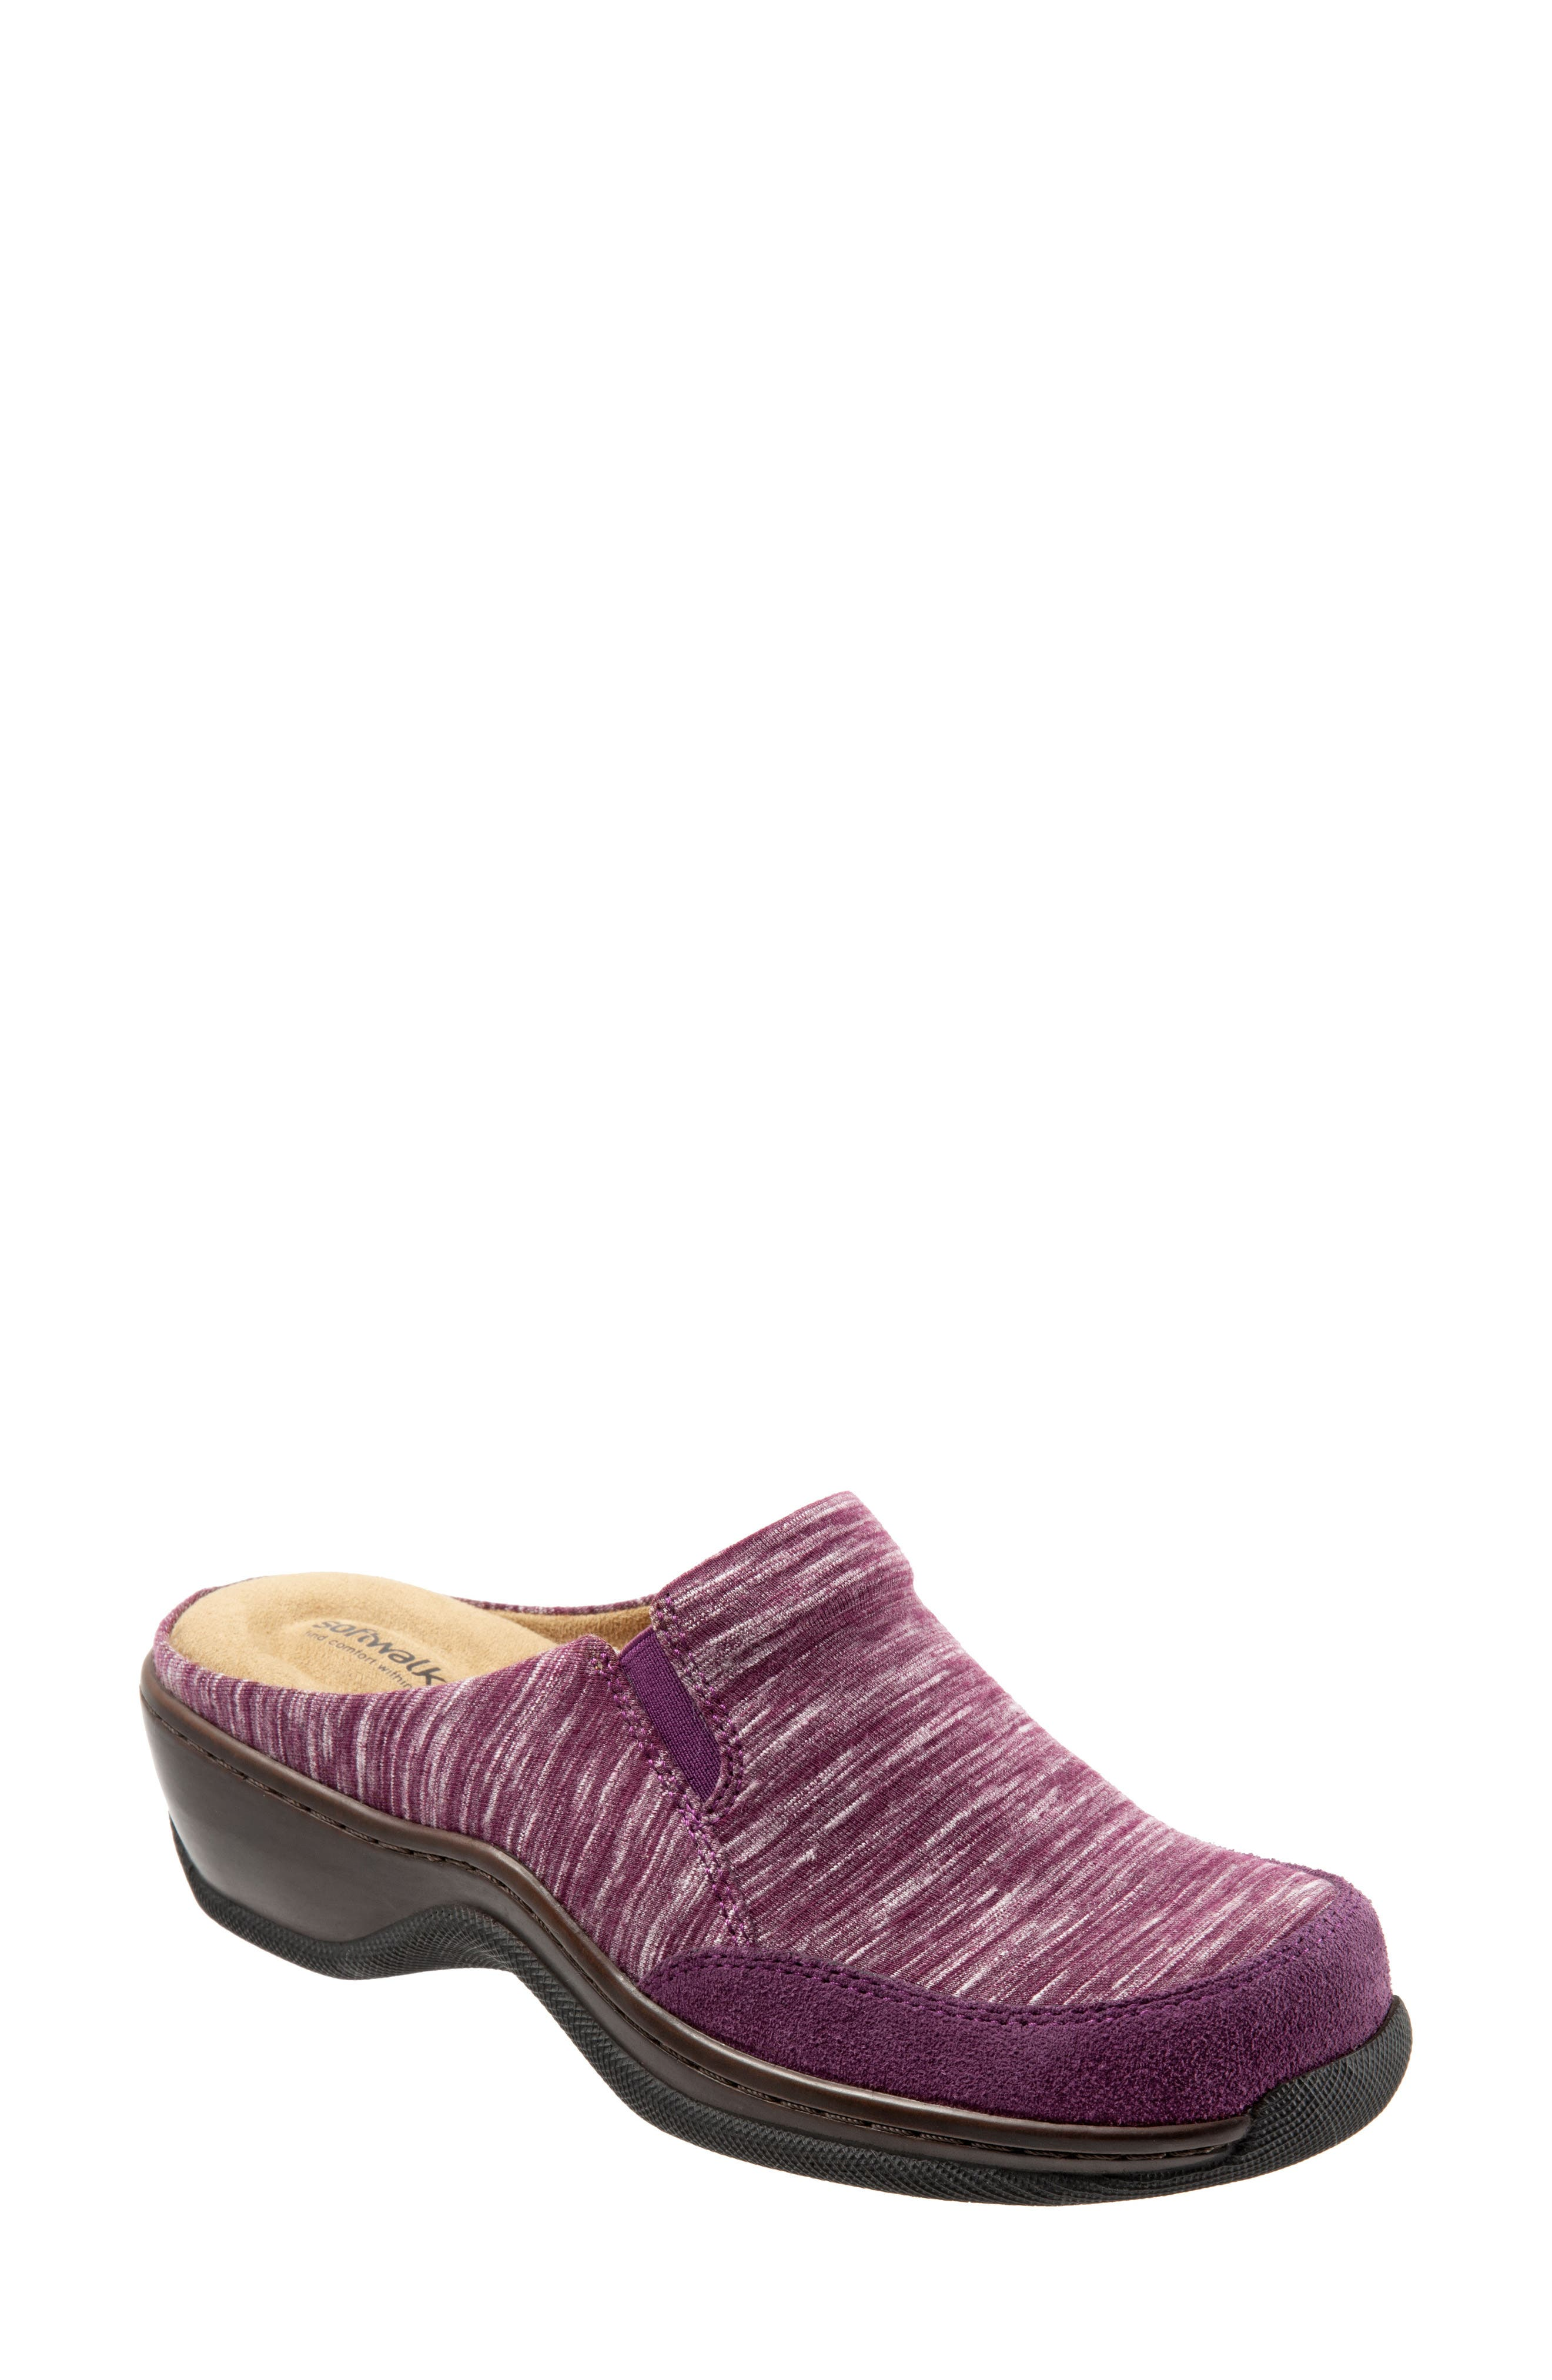 Alcon Clog,                             Main thumbnail 1, color,                             930